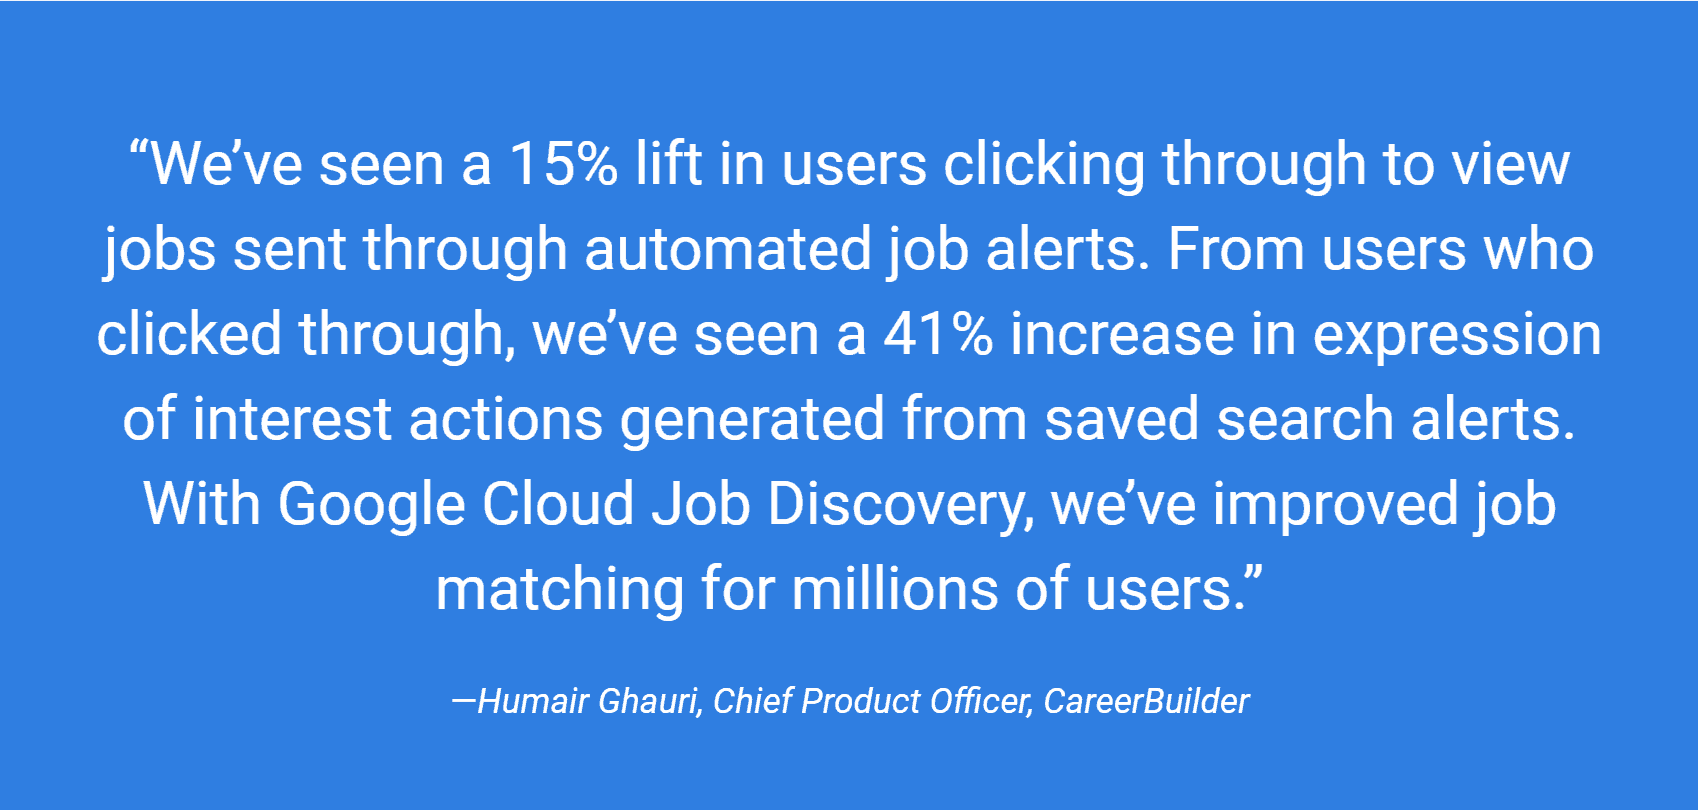 with google cloud job discovery, we've improved job matching for millions of users